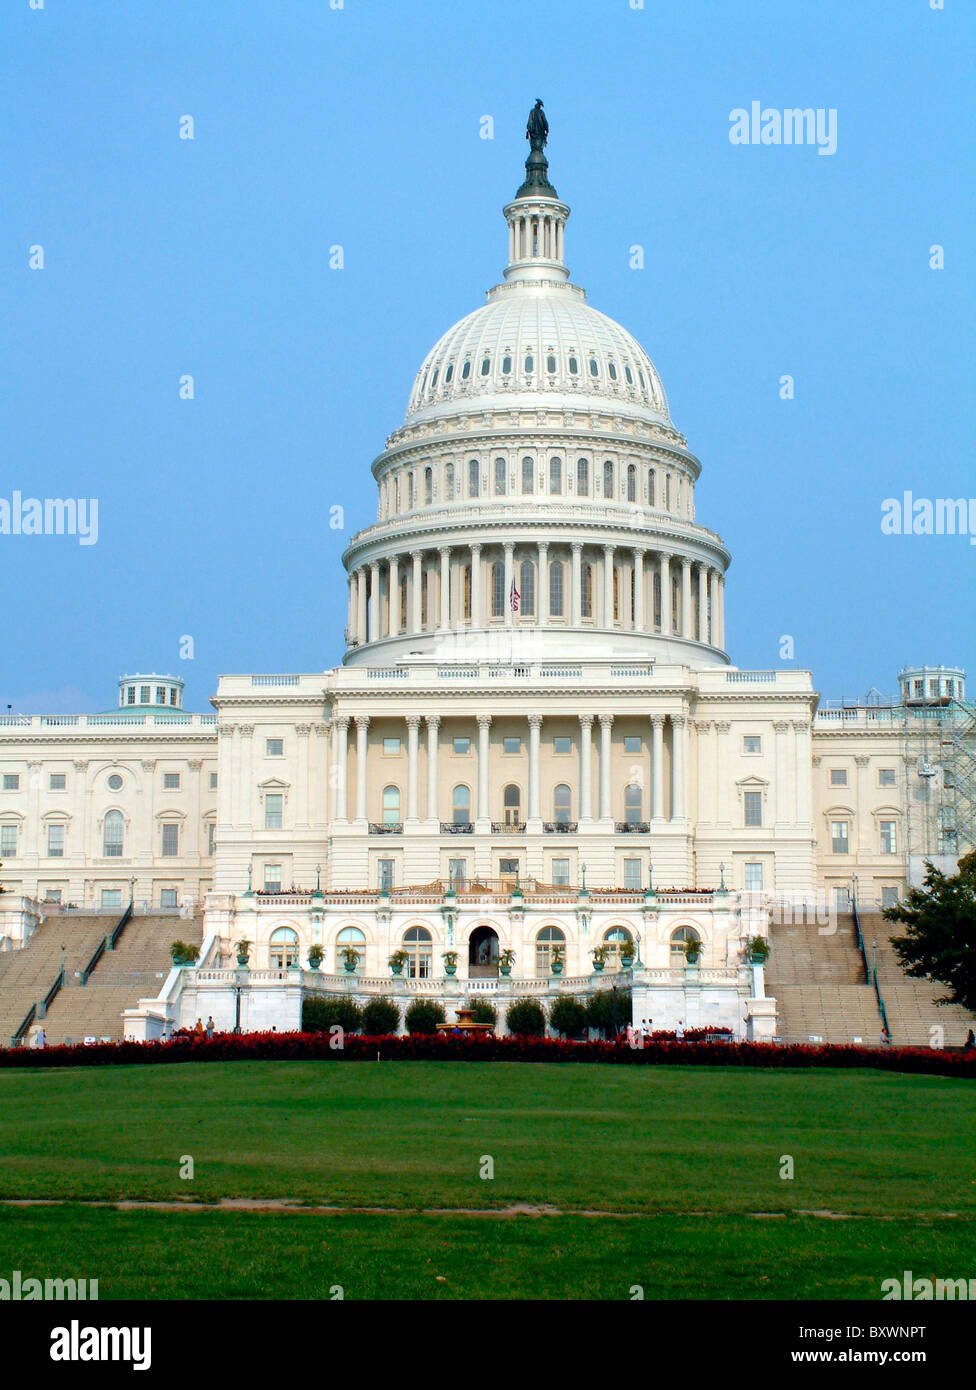 The US Capitol - Stock Image